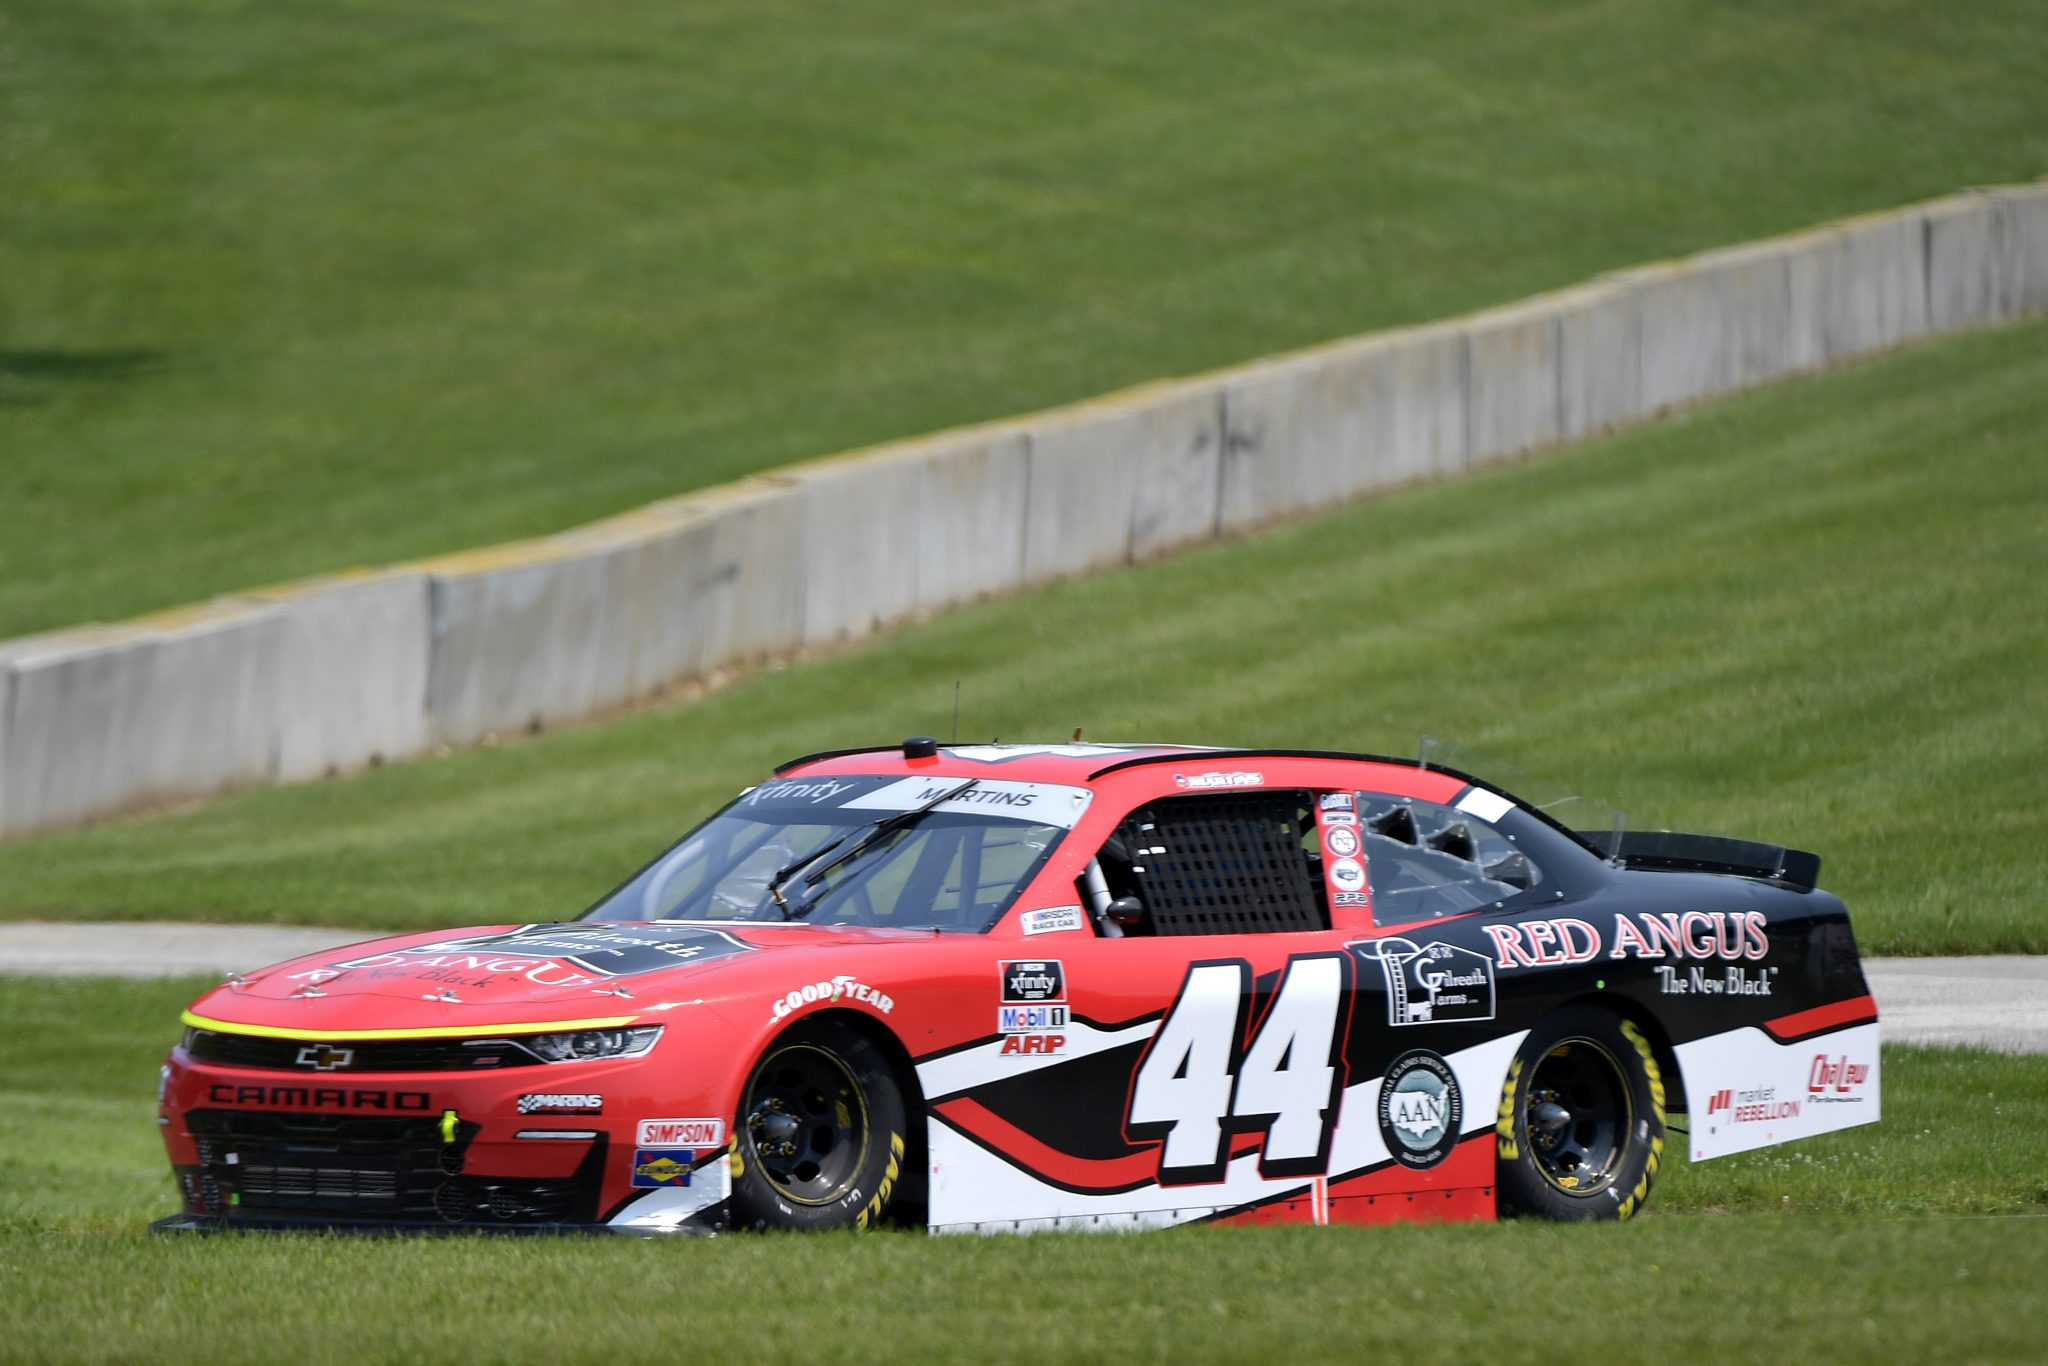 ELKHART LAKE, WISCONSIN - JULY 03: Tommy Joe Martins, driver of the #44 Gilreath Farms Red Angus Chevrolet, drives during the NASCAR Xfinity Series Henry 180 at Road America on July 03, 2021 in Elkhart Lake, Wisconsin. (Photo by Logan Riely/Getty Images) | Getty Images